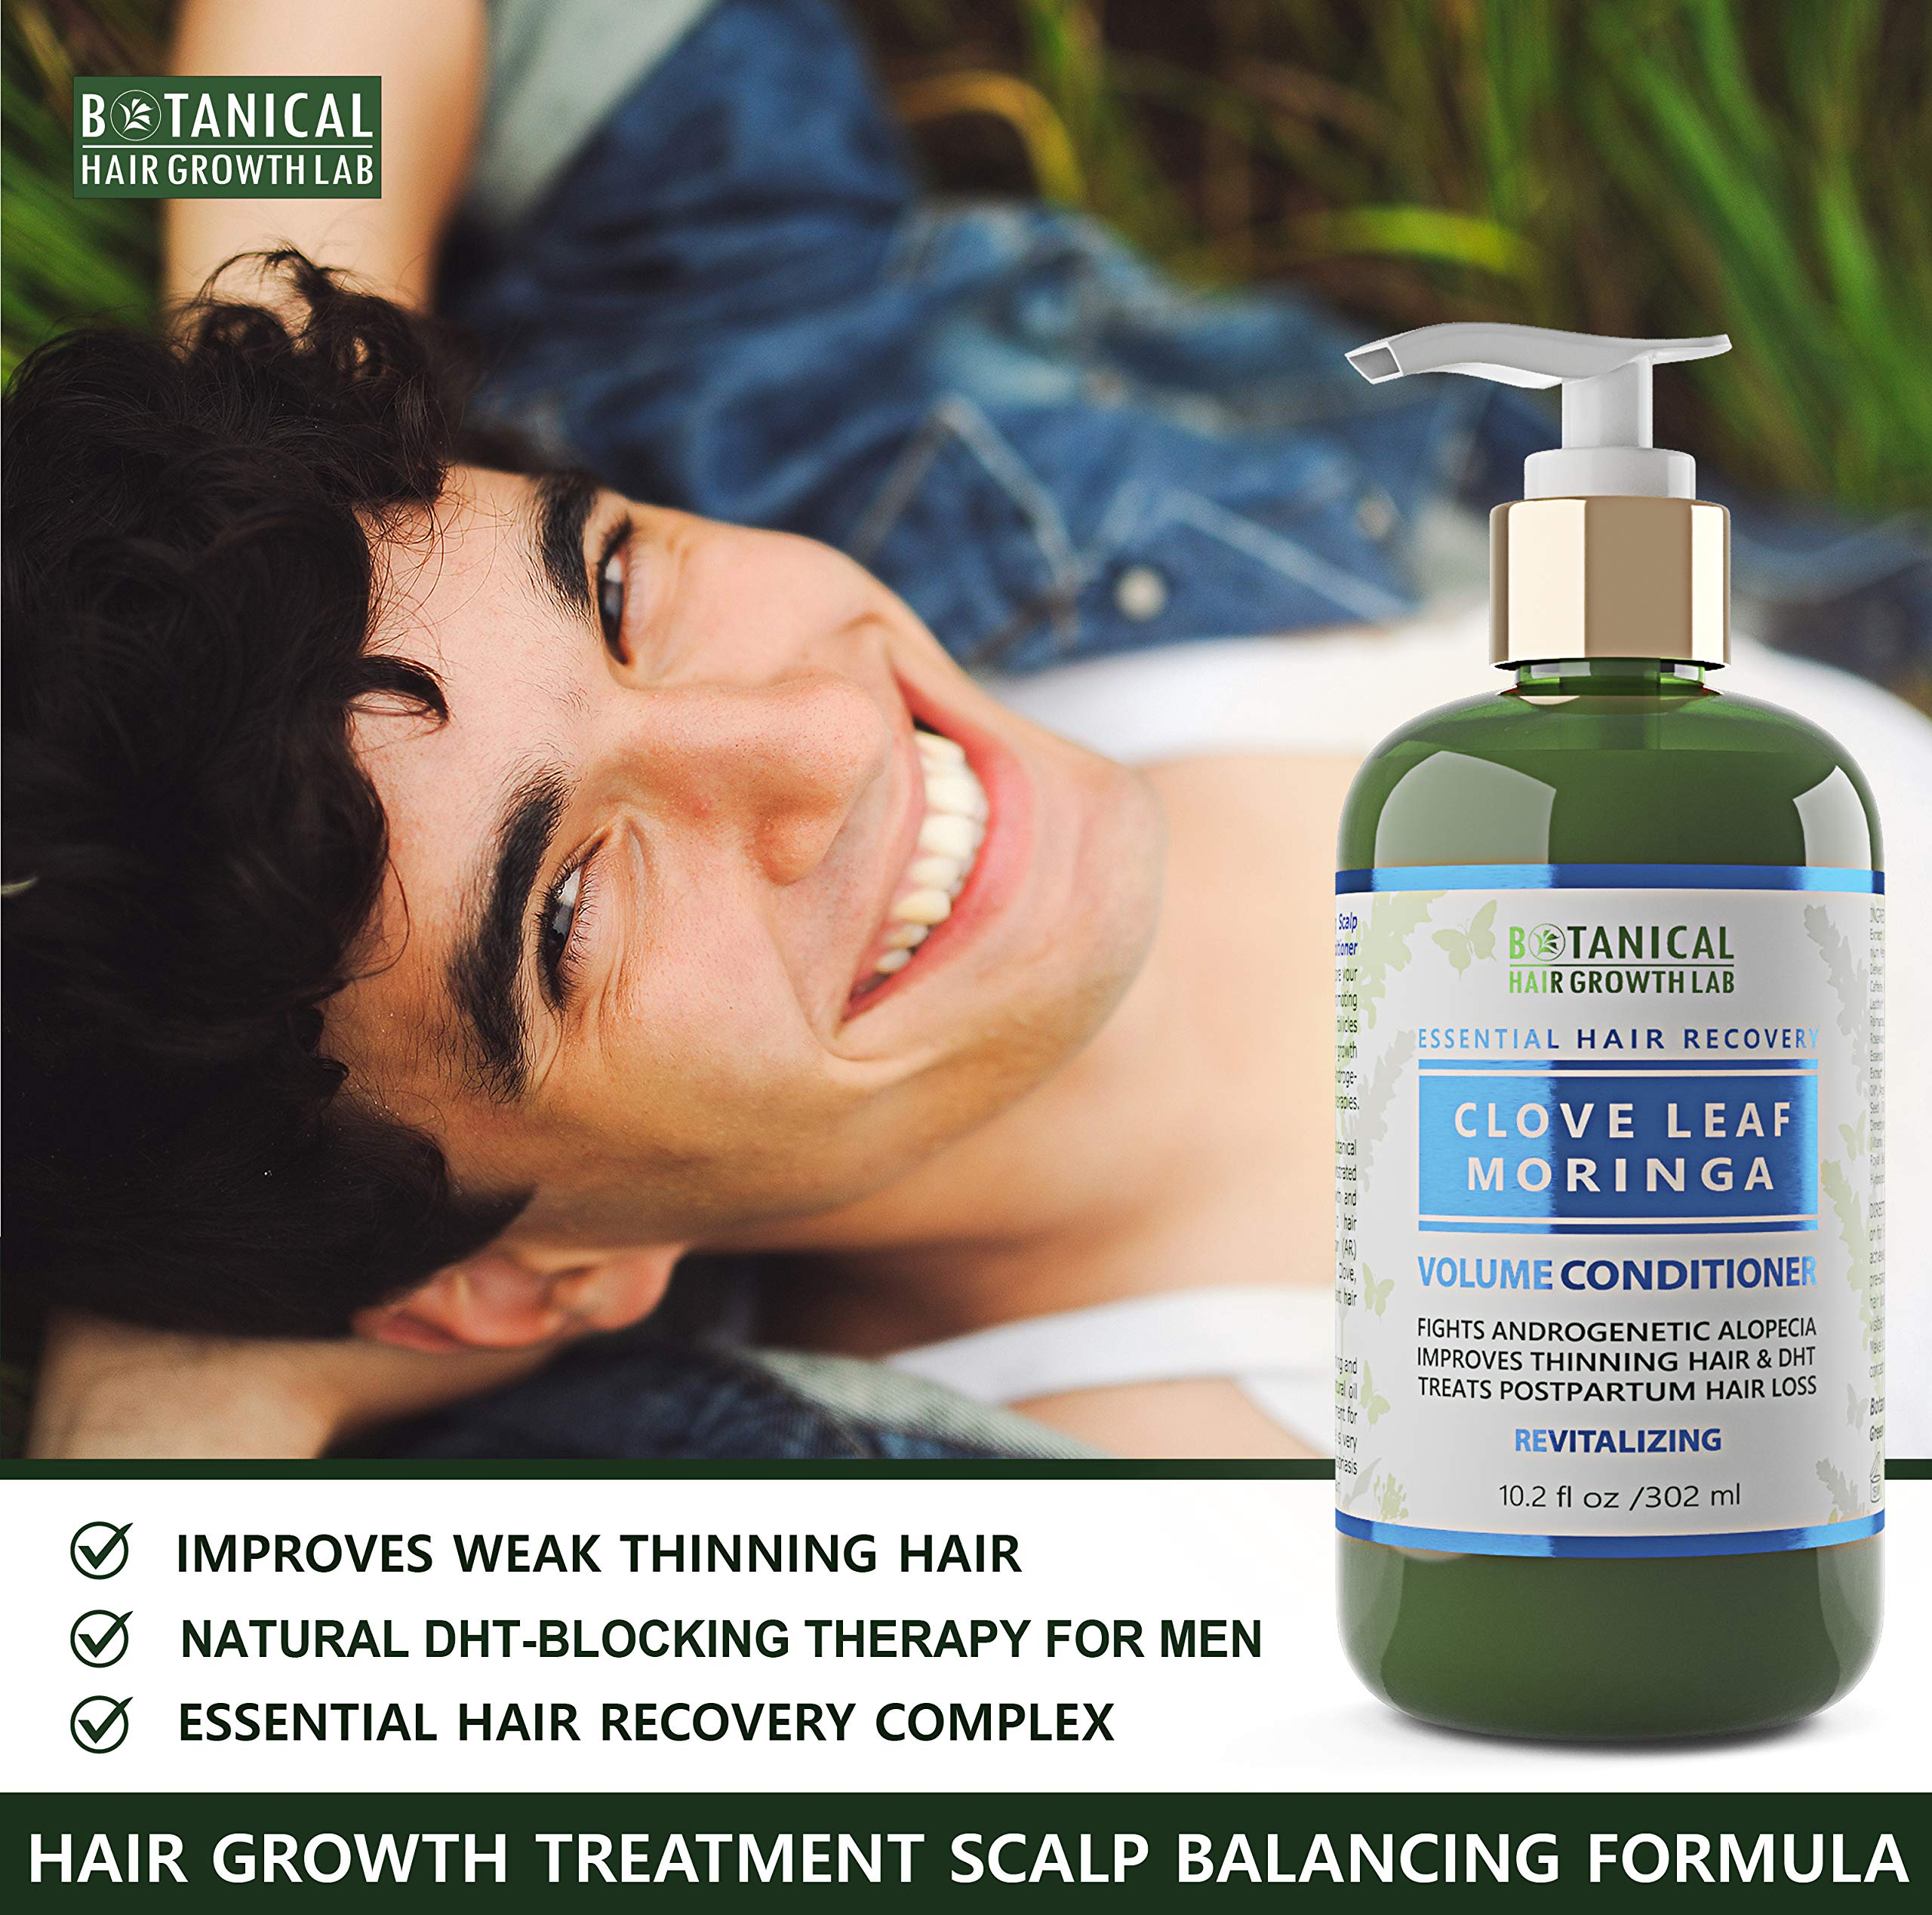 Botanical Hair Growth Lab Biotin Conditioner - Clove Leaf Moringa Formula - Anti Hair Loss Complex - DHT Blockers, Sulfate Free, Natural Ingredients for Men & Women by BOTANICAL HAIR GROWTH LAB (Image #7)